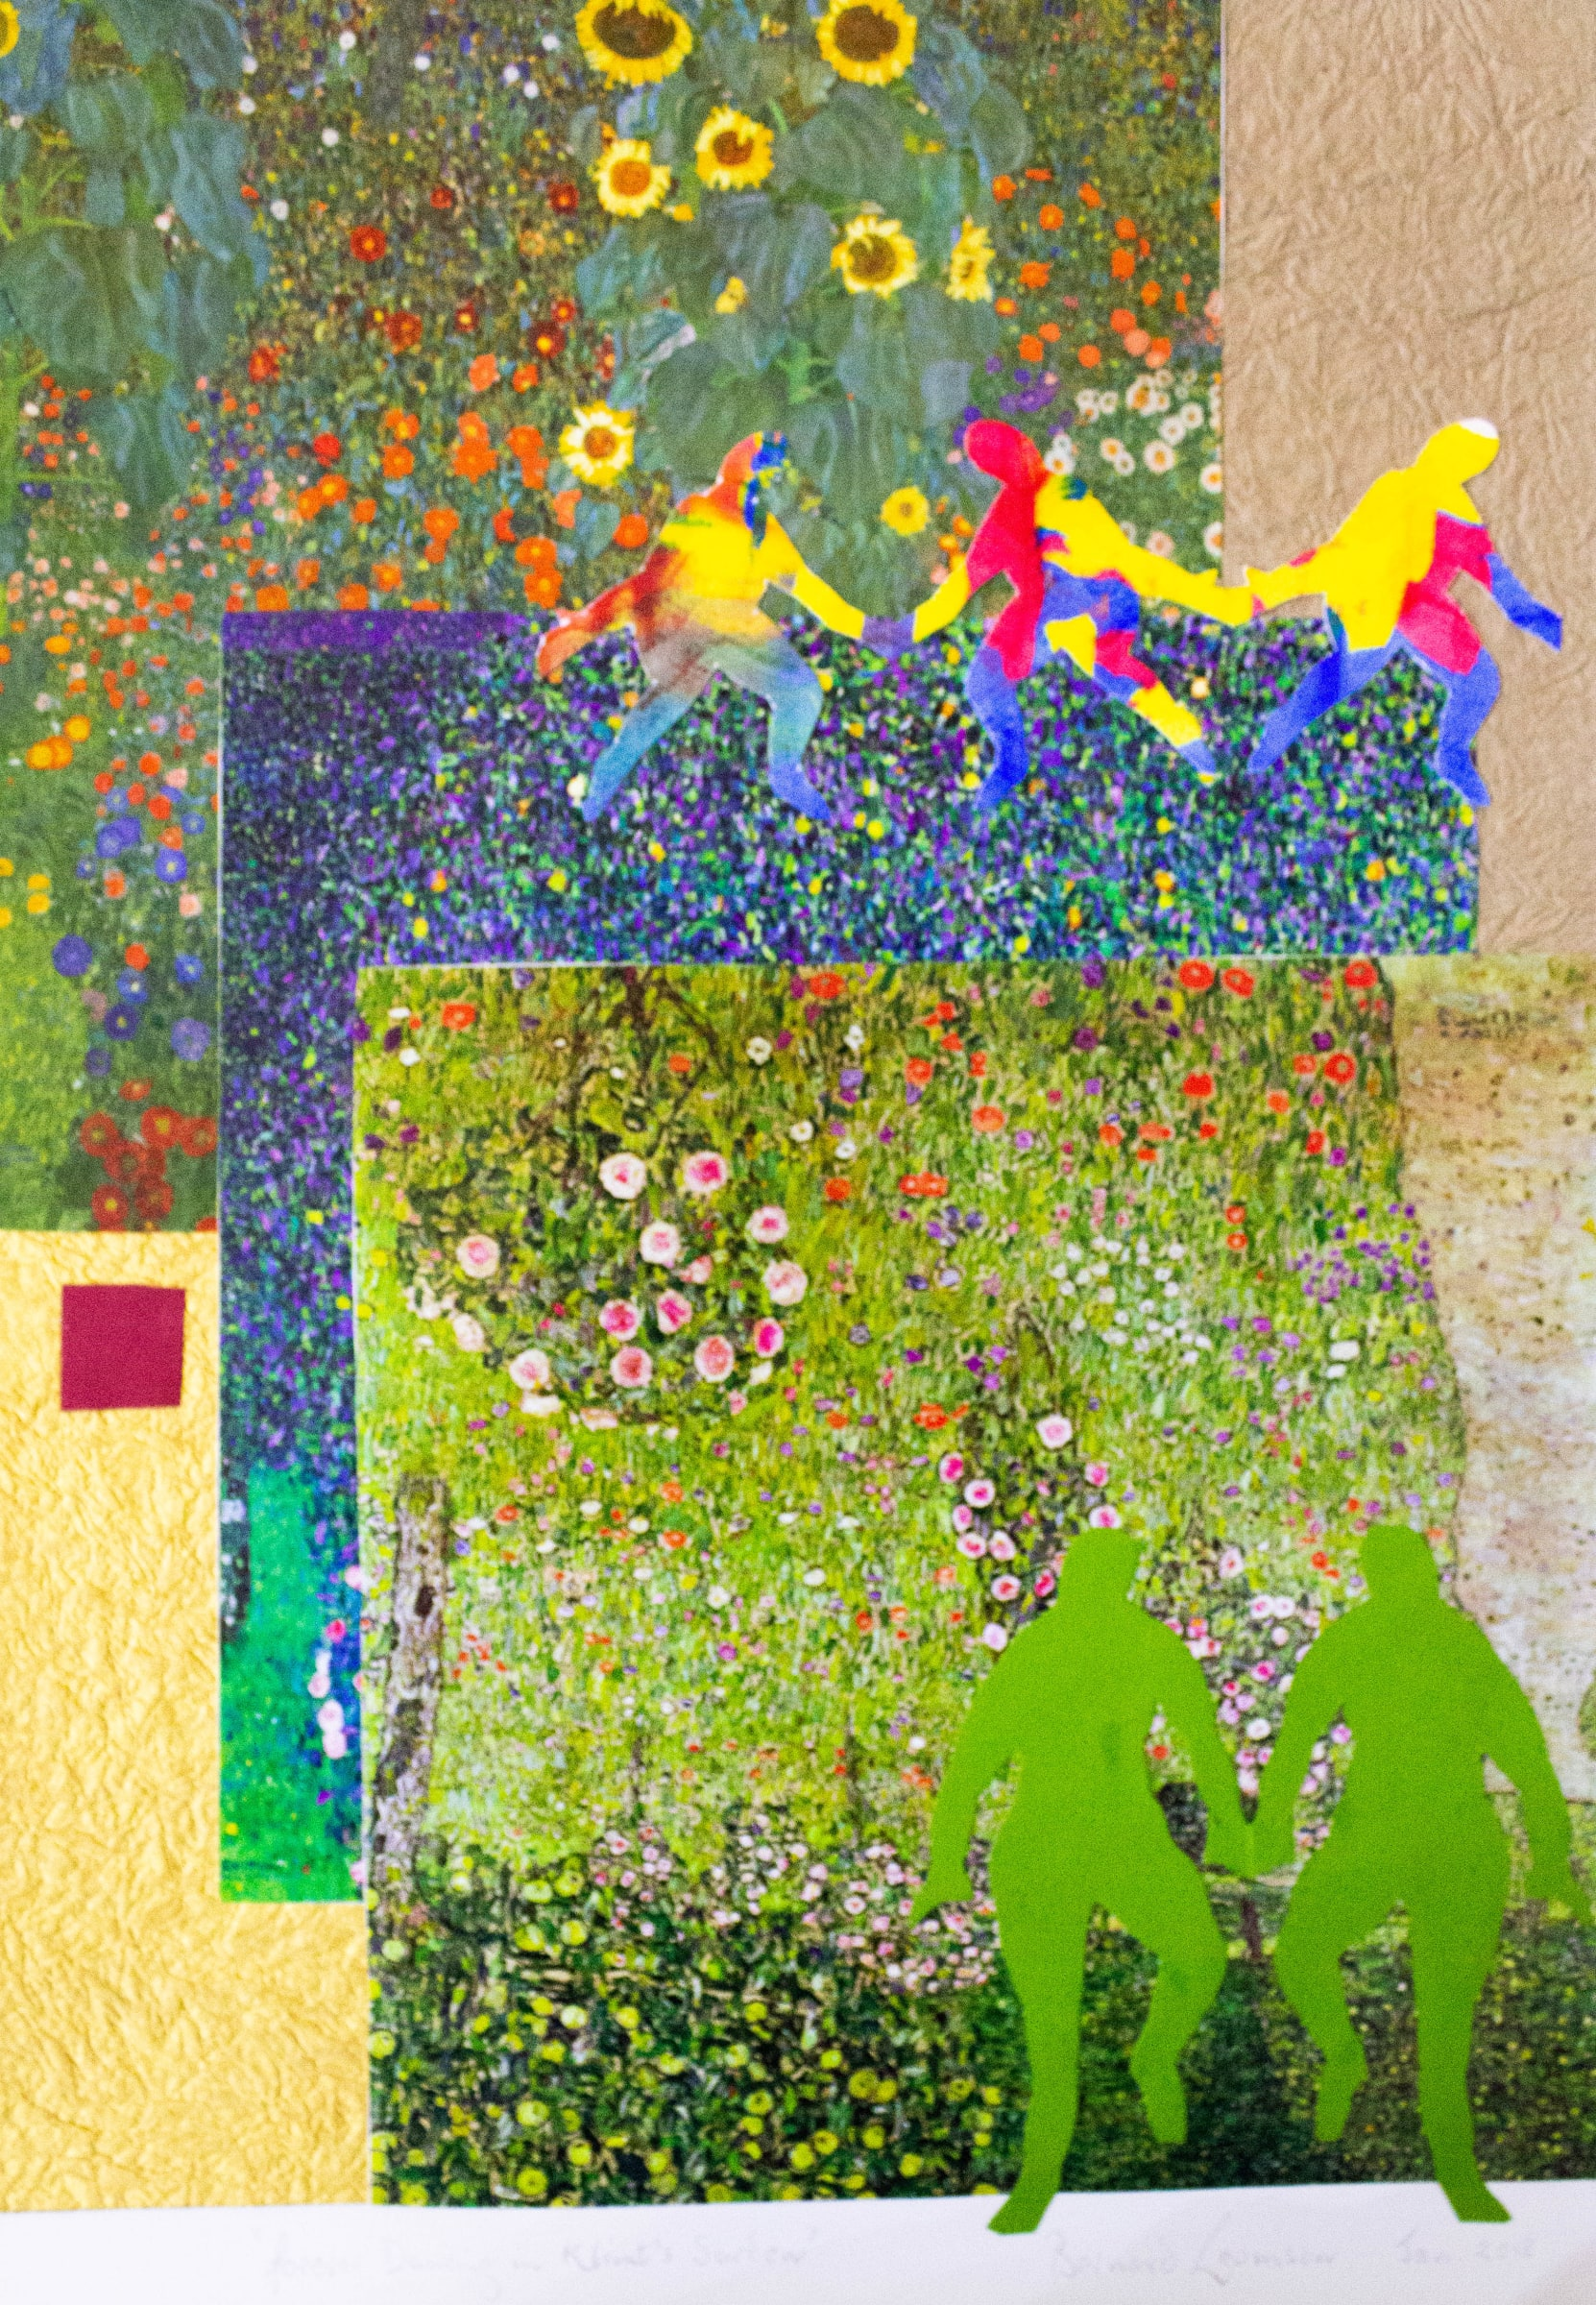 <span class=&#34;link fancybox-details-link&#34;><a href=&#34;/artists/45-bernard-levinson/works/322-bernard-levinson-forever-dancing-in-klimt-s-garden-2018/&#34;>View Detail Page</a></span><div class=&#34;artist&#34;><strong>Bernard Levinson</strong></div> <div class=&#34;title&#34;><em>Forever Dancing In Klimt's Garden</em>, 2018</div> <div class=&#34;medium&#34;>Mixed Media on Paper</div> <div class=&#34;dimensions&#34;>51cm x 35.9cm</div>